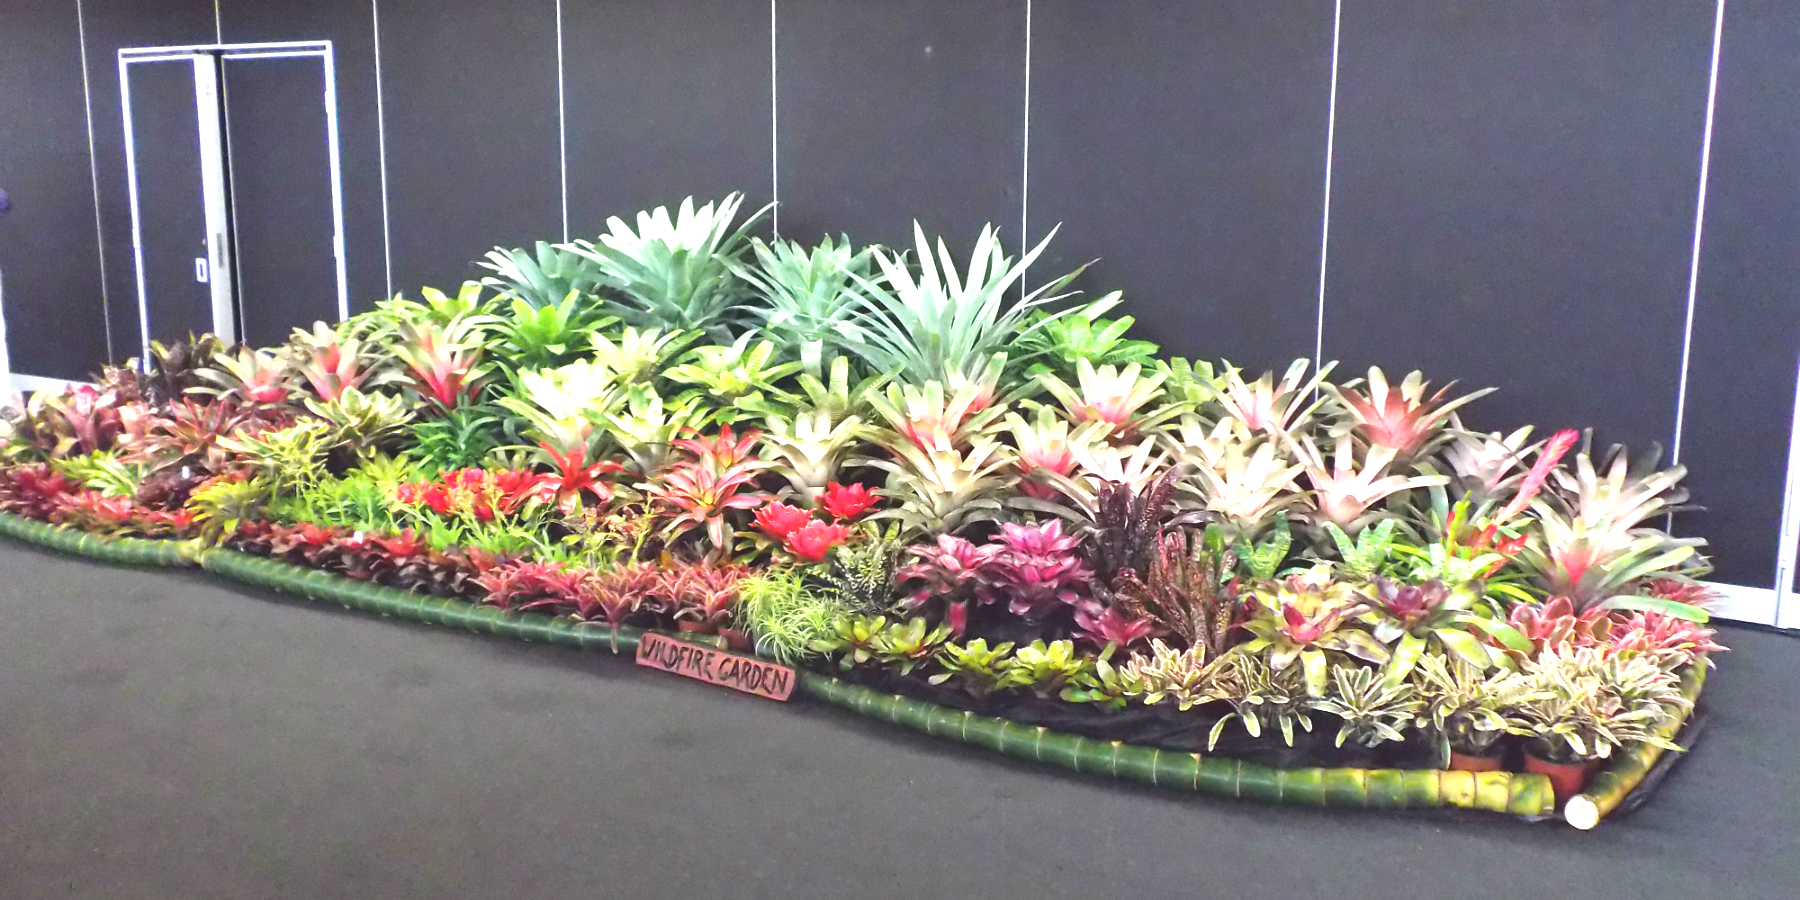 Wildfire Garden Sunny Broms Conference Display